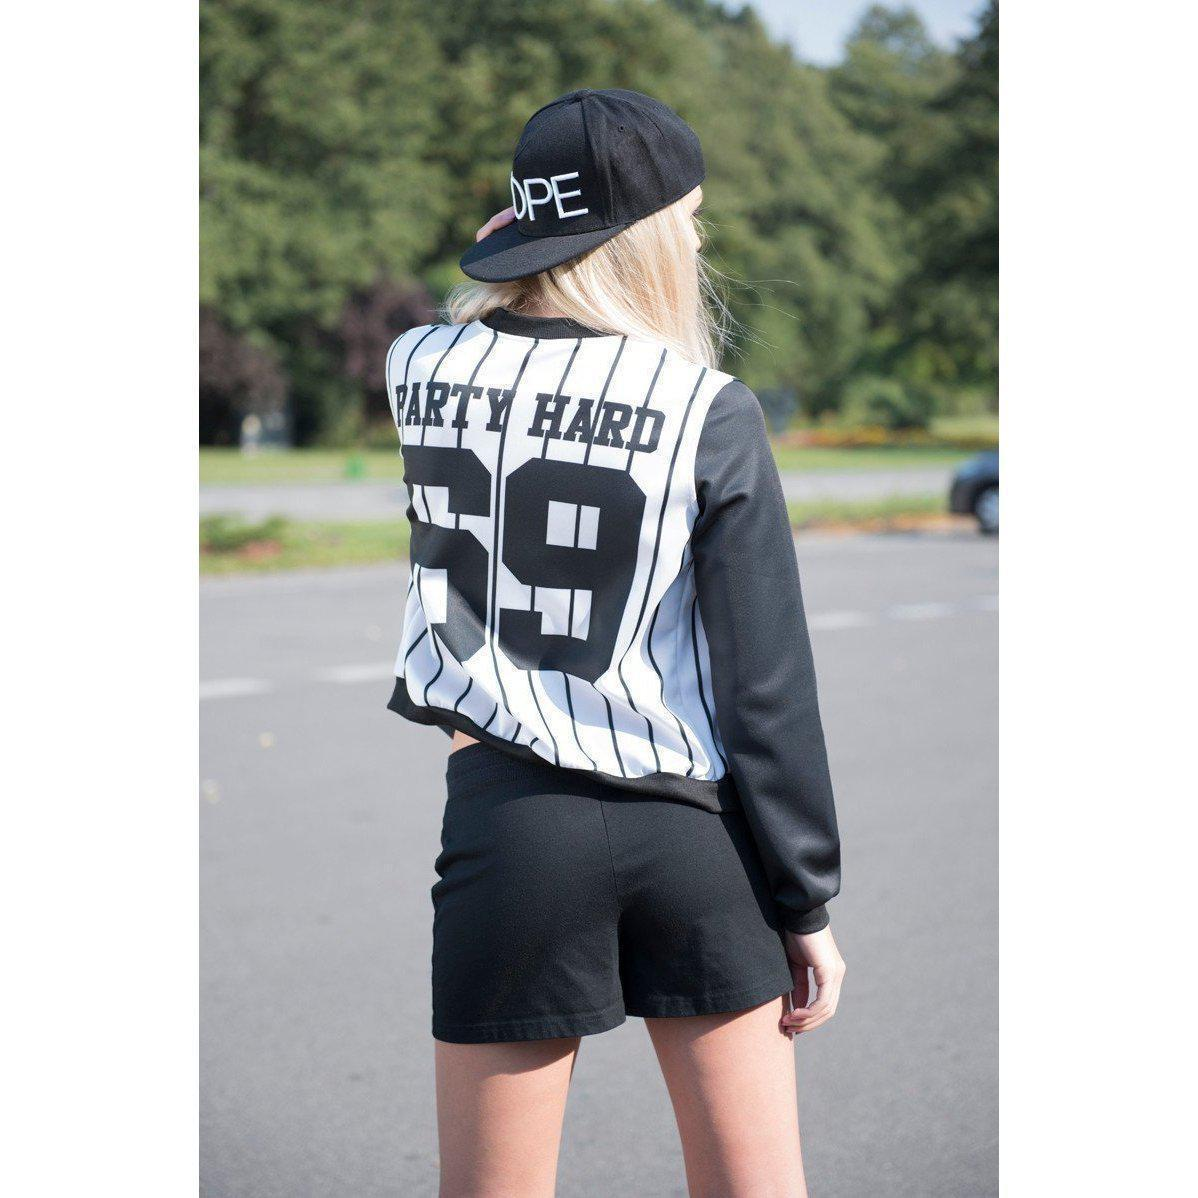 Sexy Girls Crazy Parties Jackets - The Black Ravens